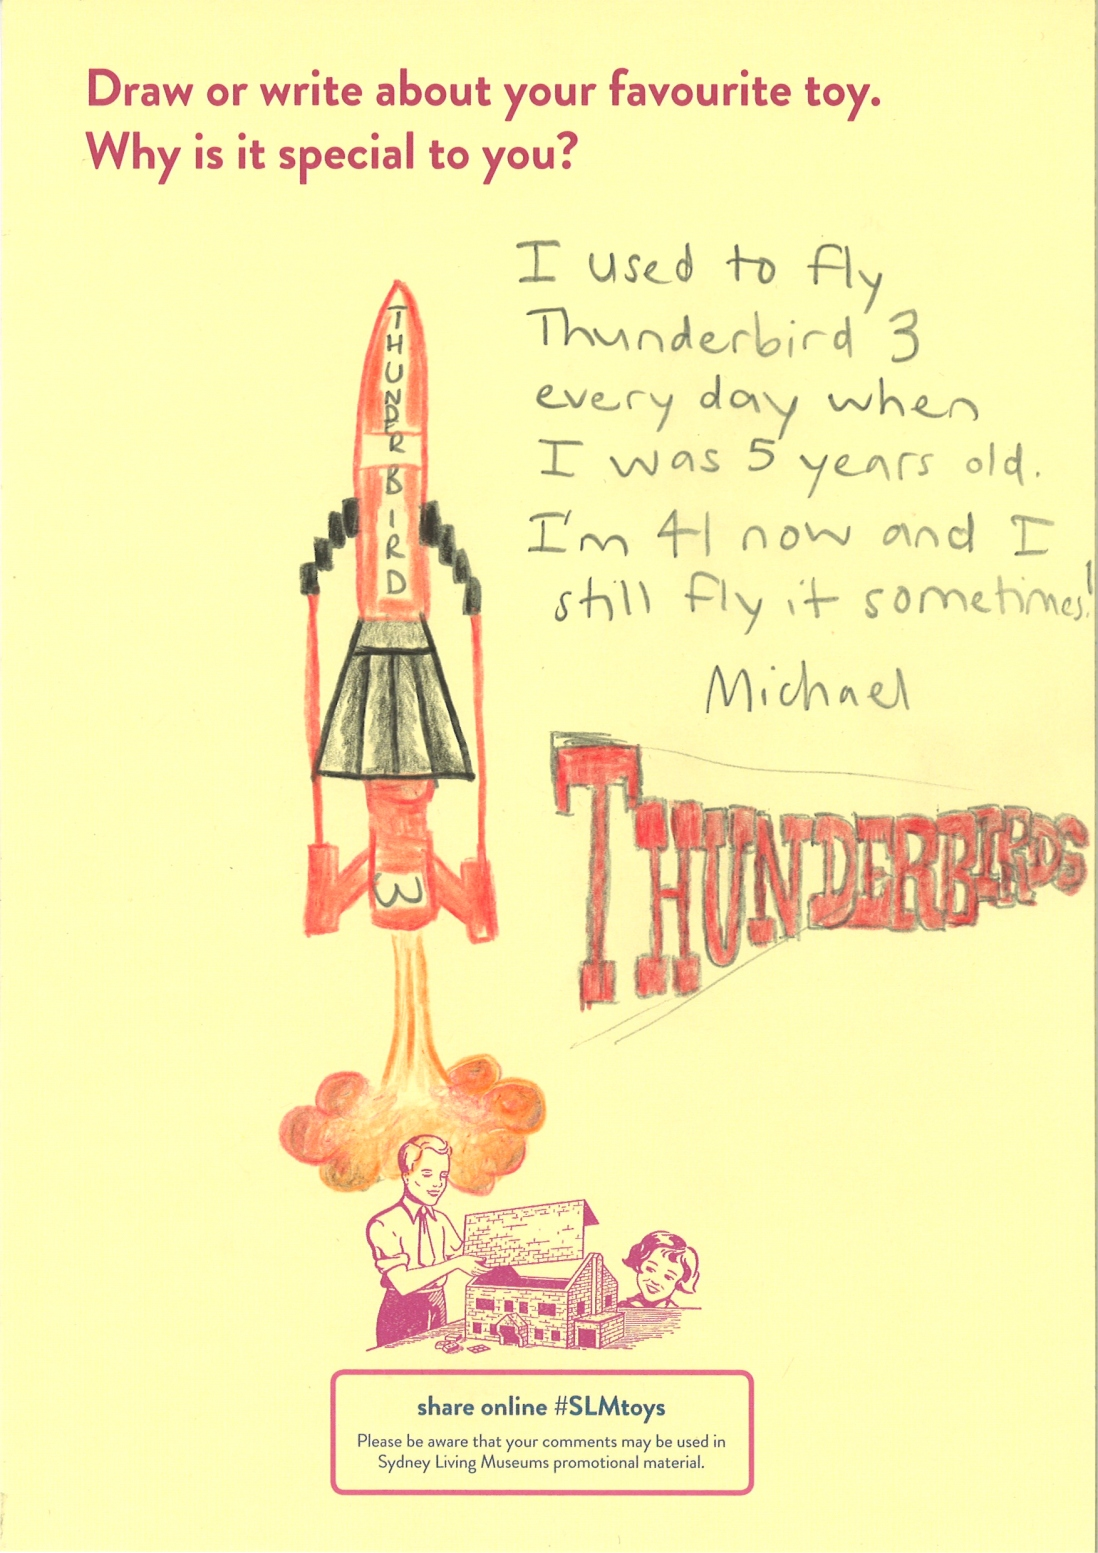 A drawing of Thunderbird 3